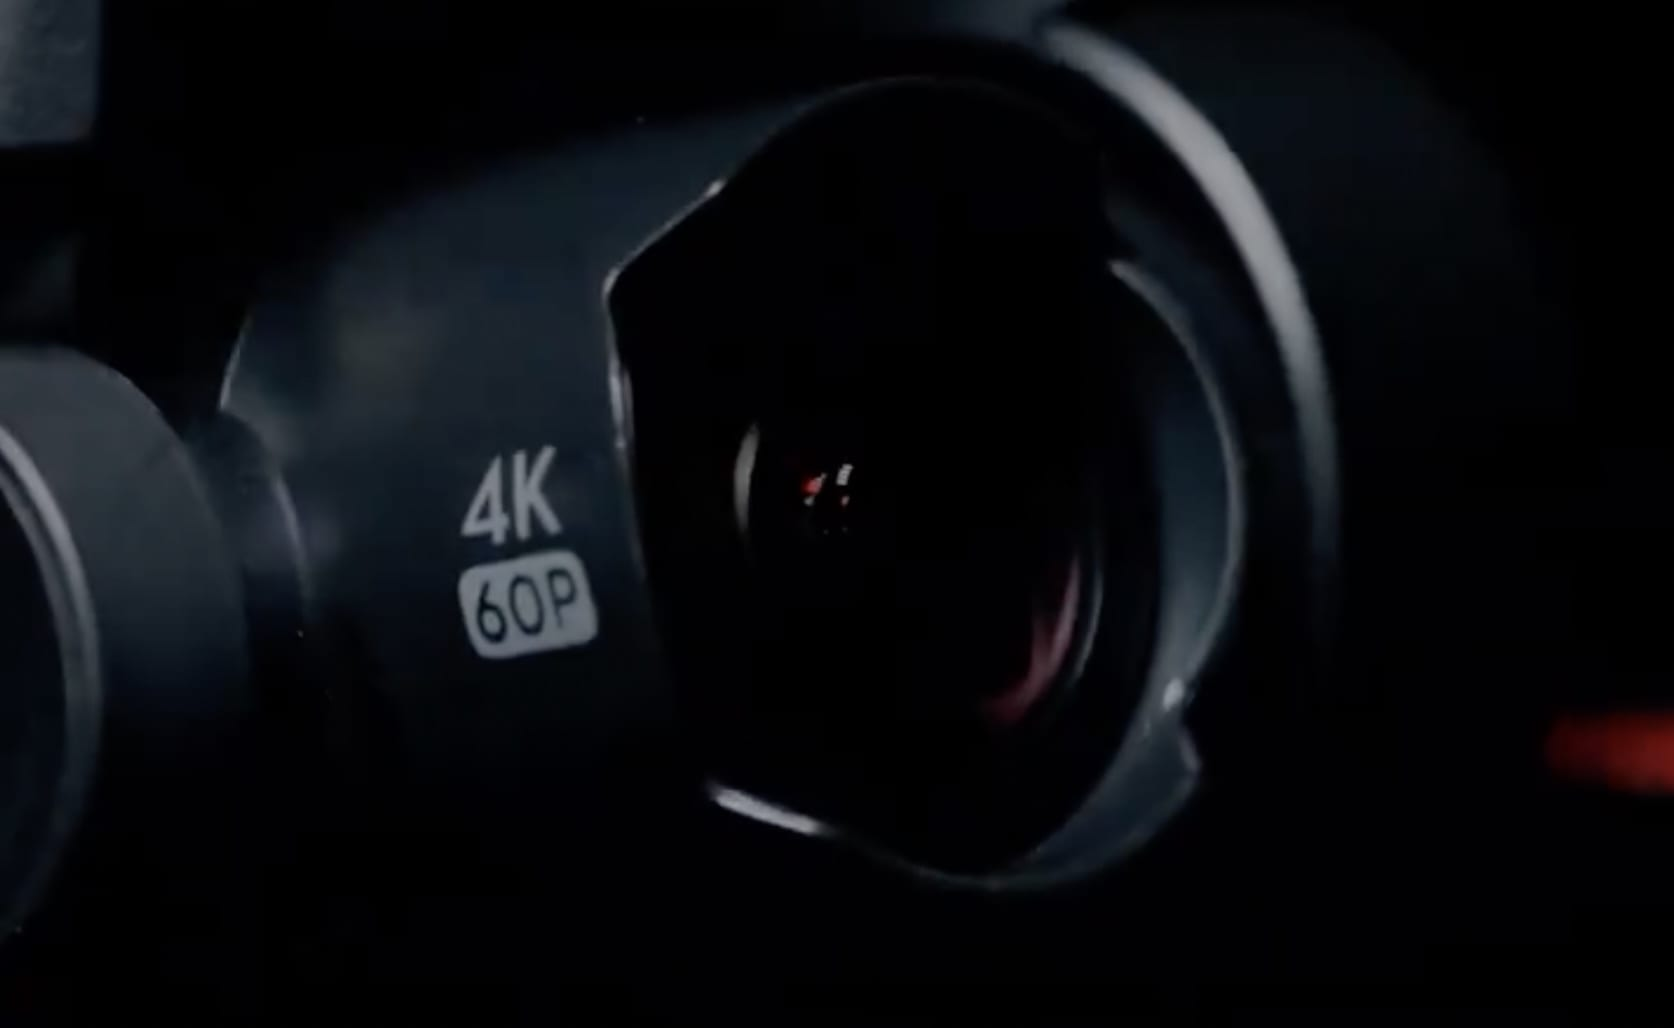 DJI shows 4K at 60fps for DJI FPV drone in new teaser video